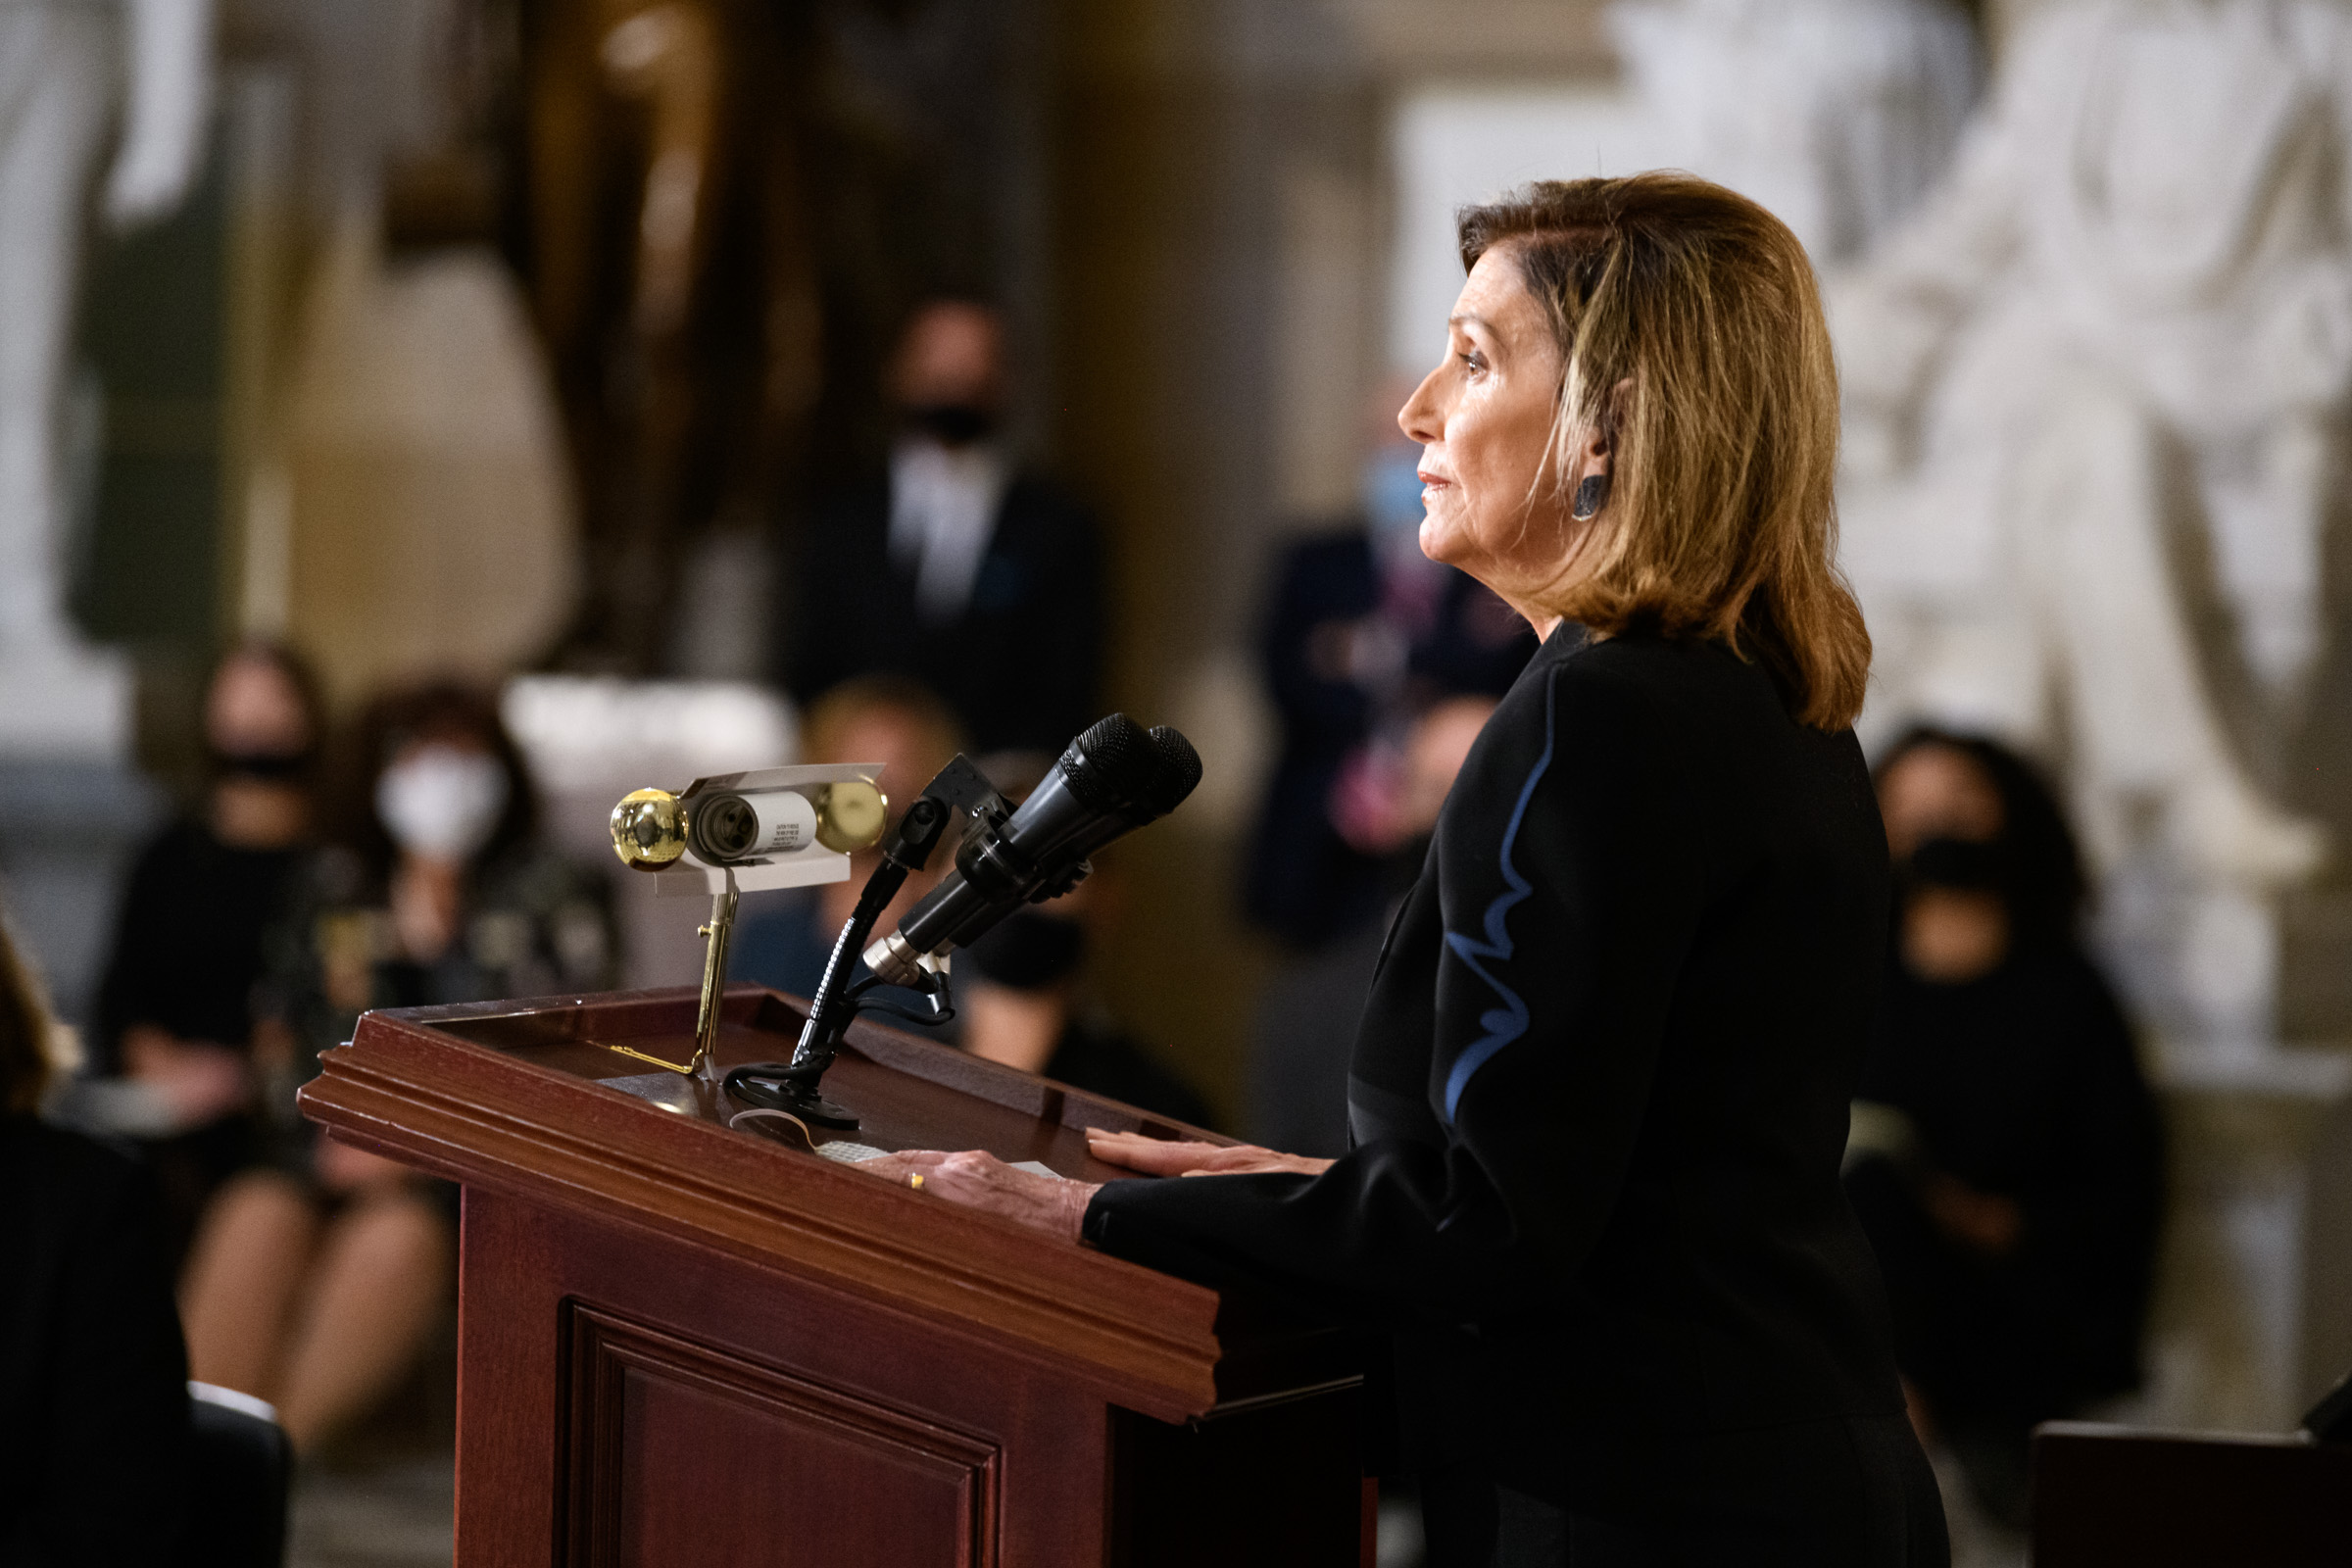 Speaker of the House of Representatives Nancy Pelosi spoke at the memorial service. Photo by Ike Hay